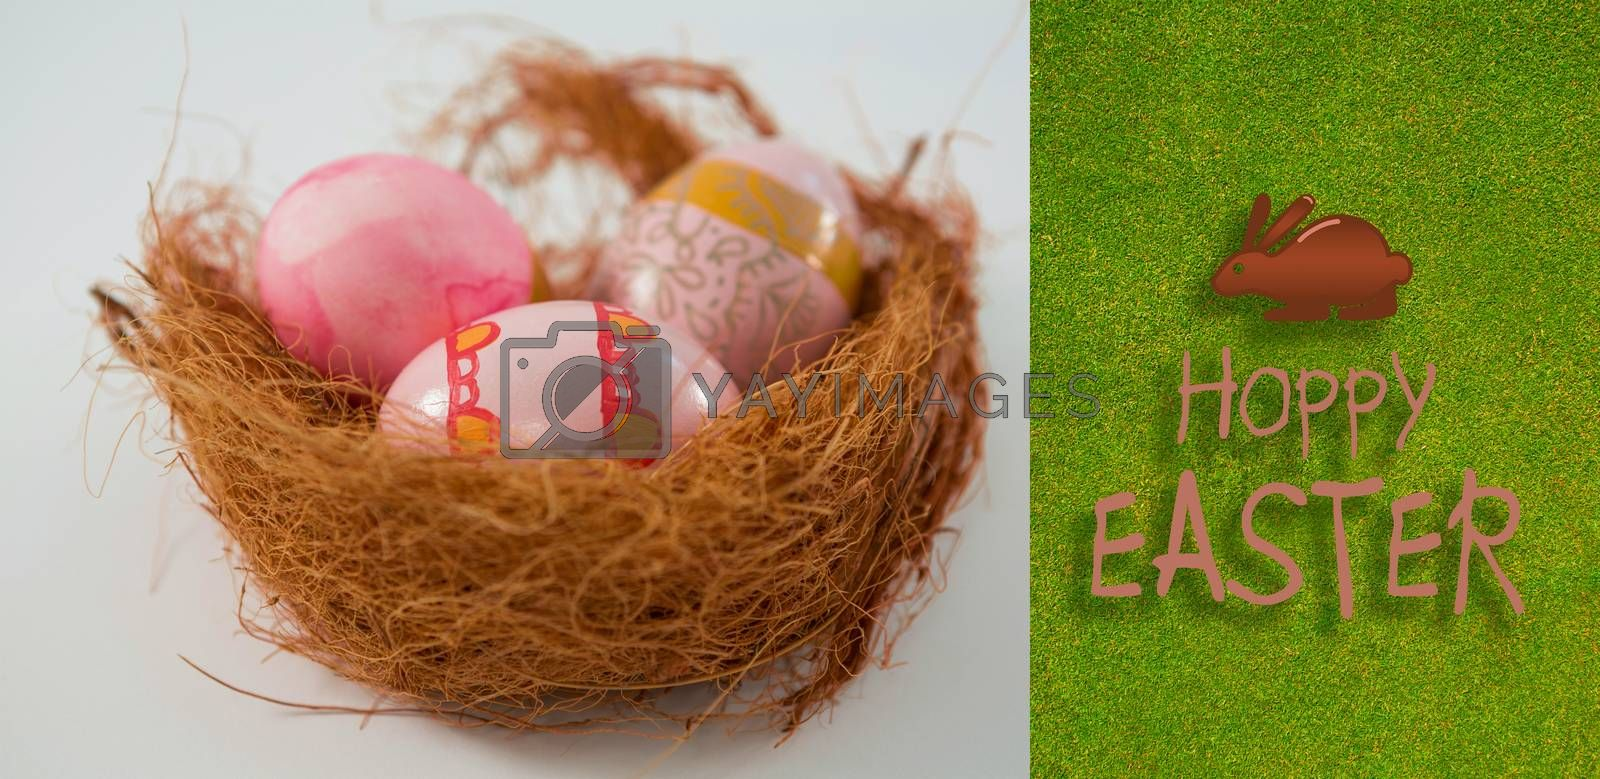 Happy Easter greeting against green background